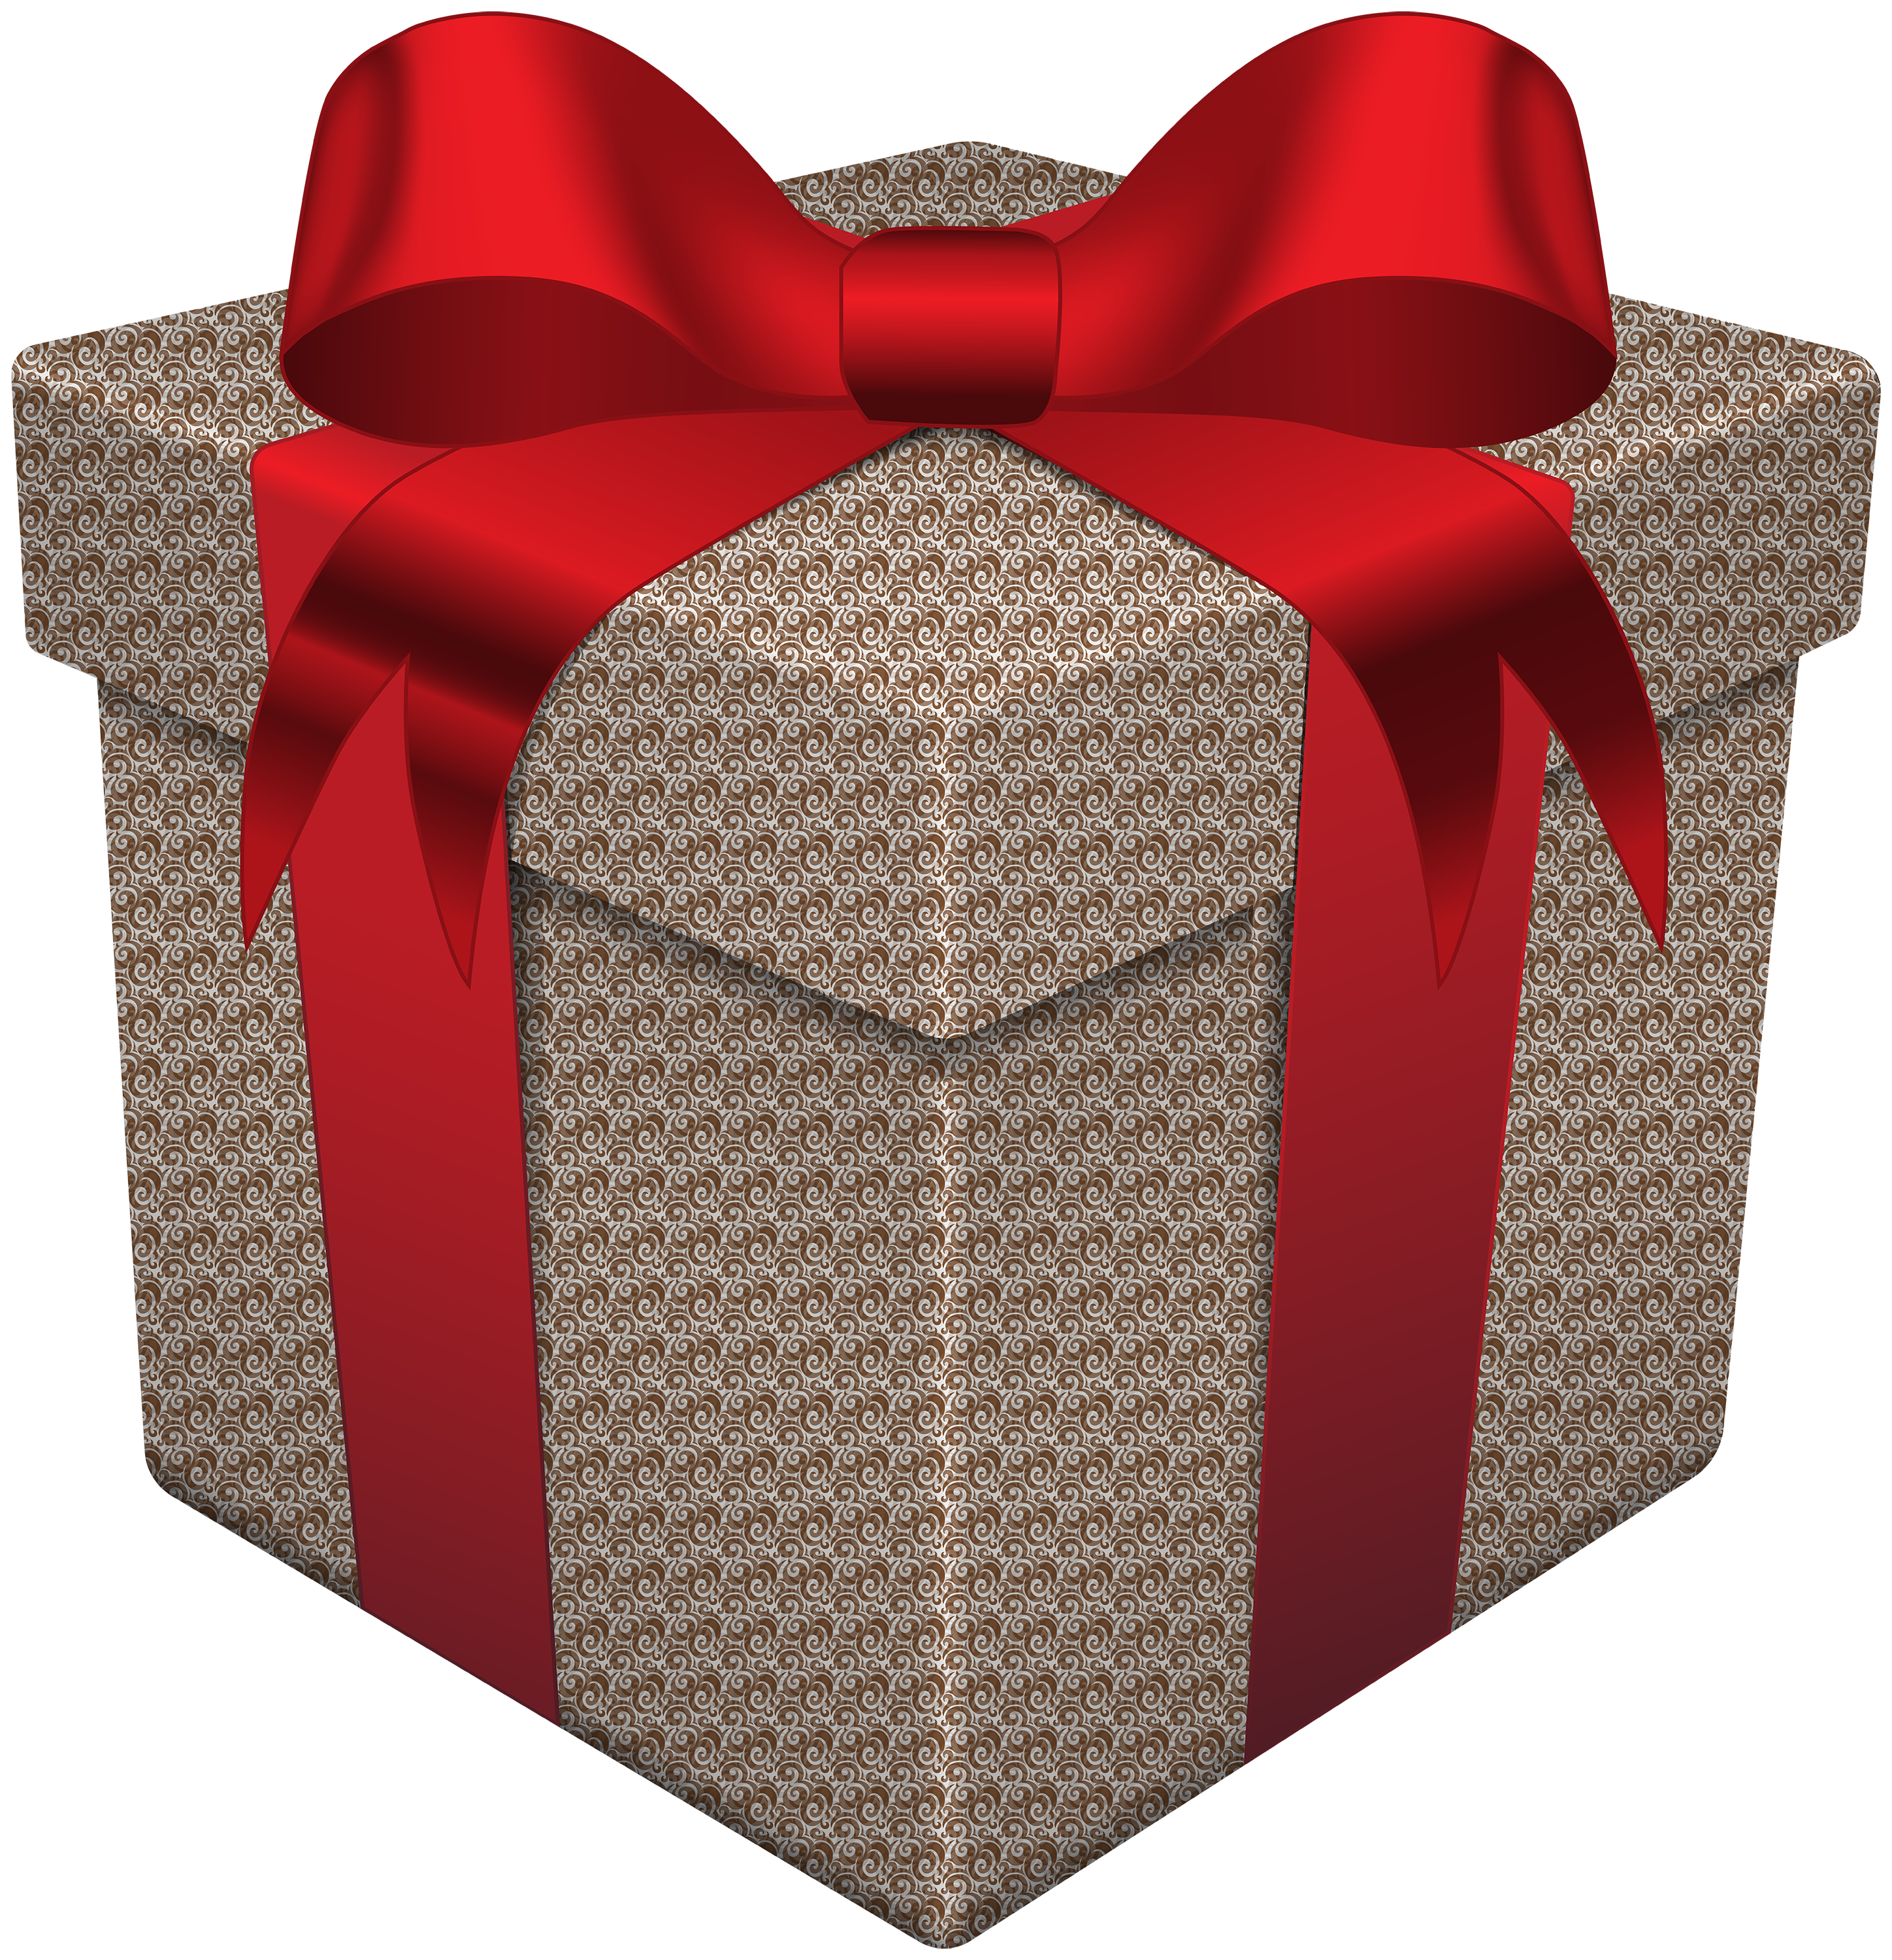 Gift box deco transparent. Gifts clipart birthday accessory